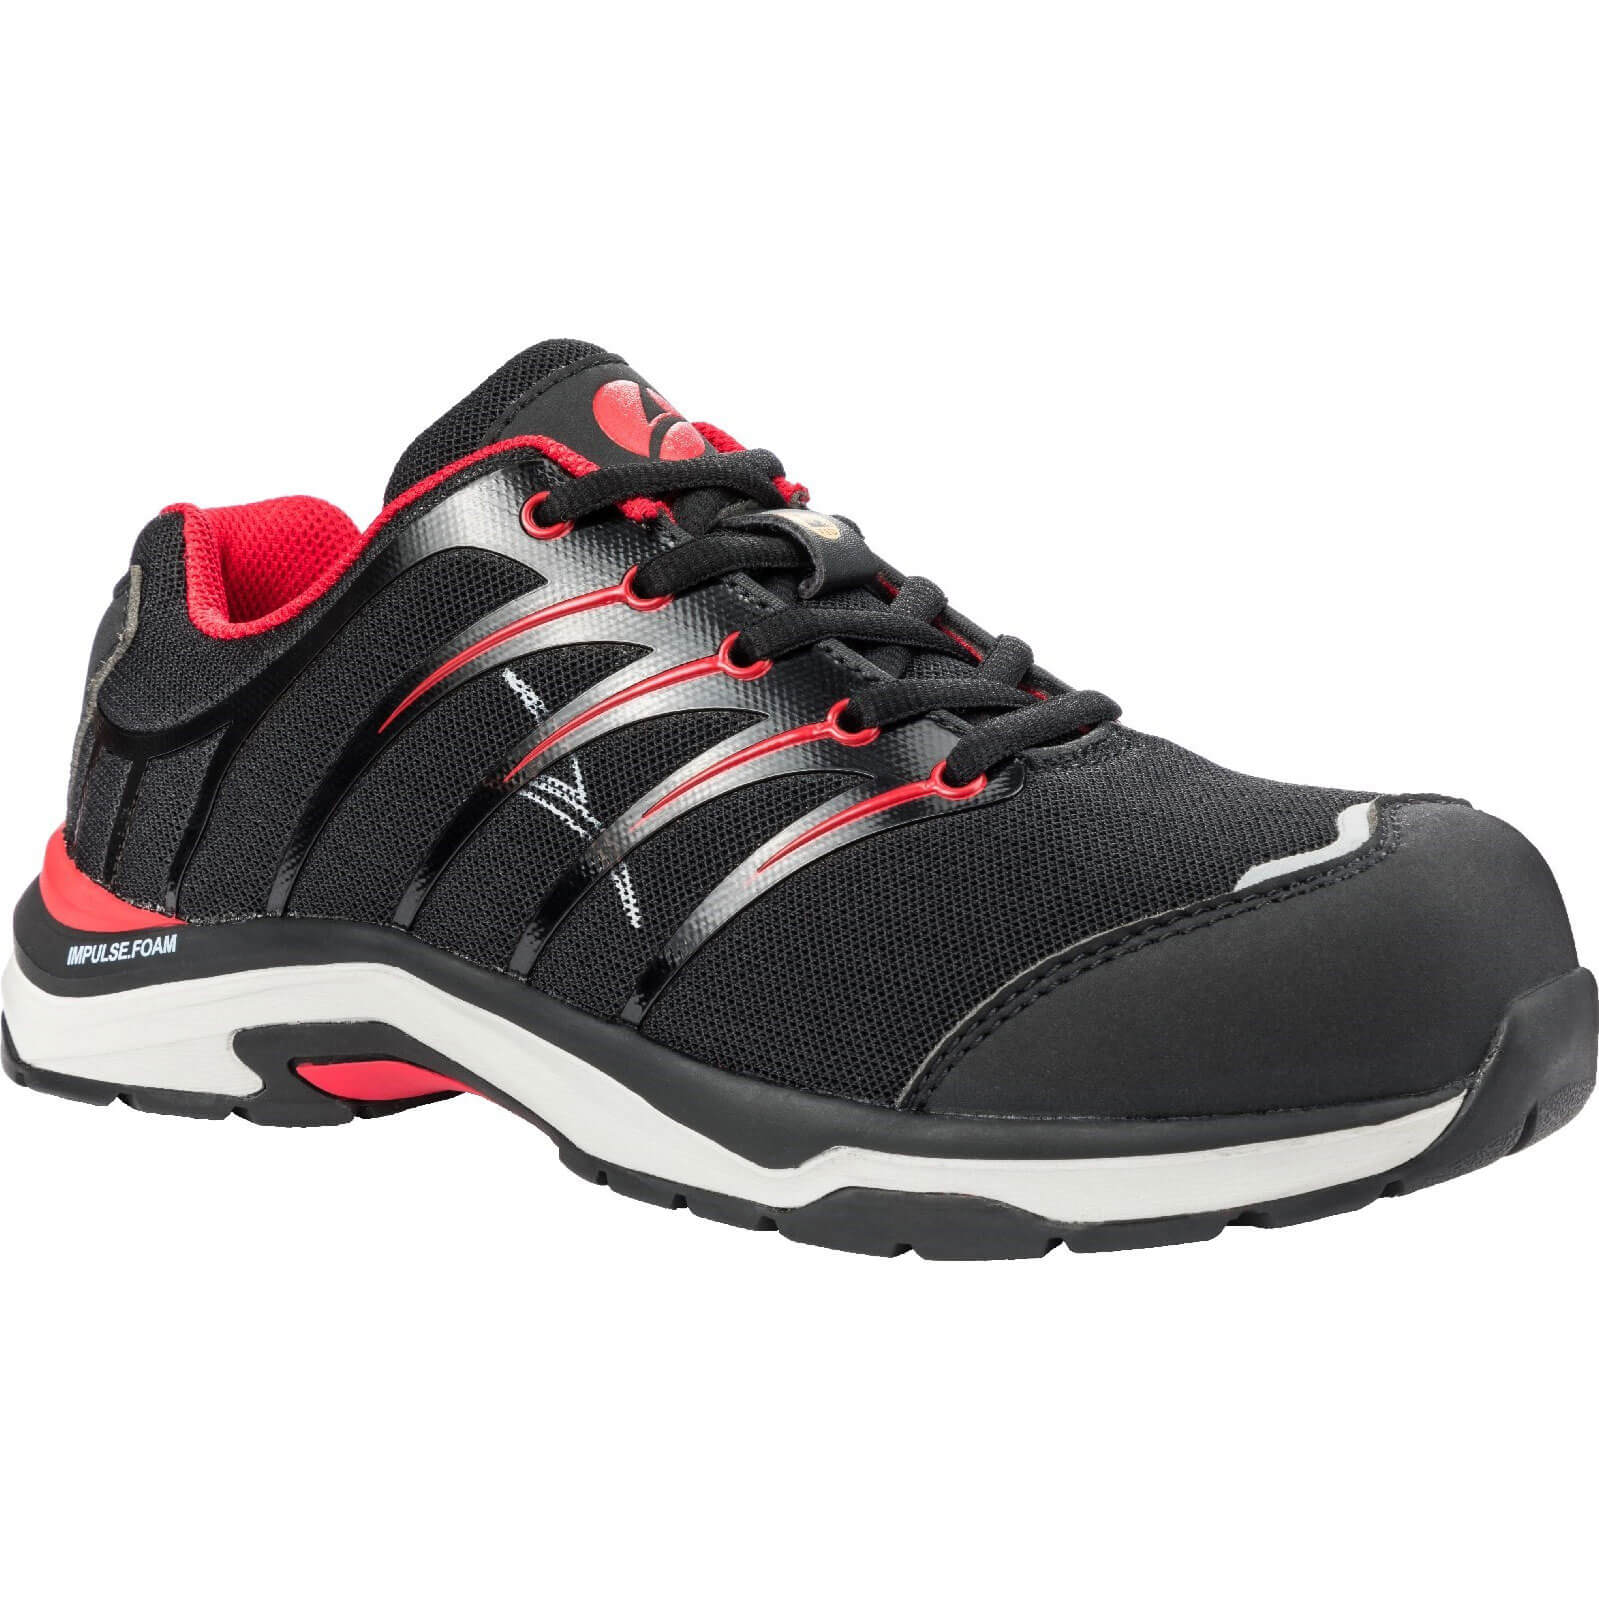 Image of Albatros Twist Low Lace Up Safety Shoe Black / Red Size 3